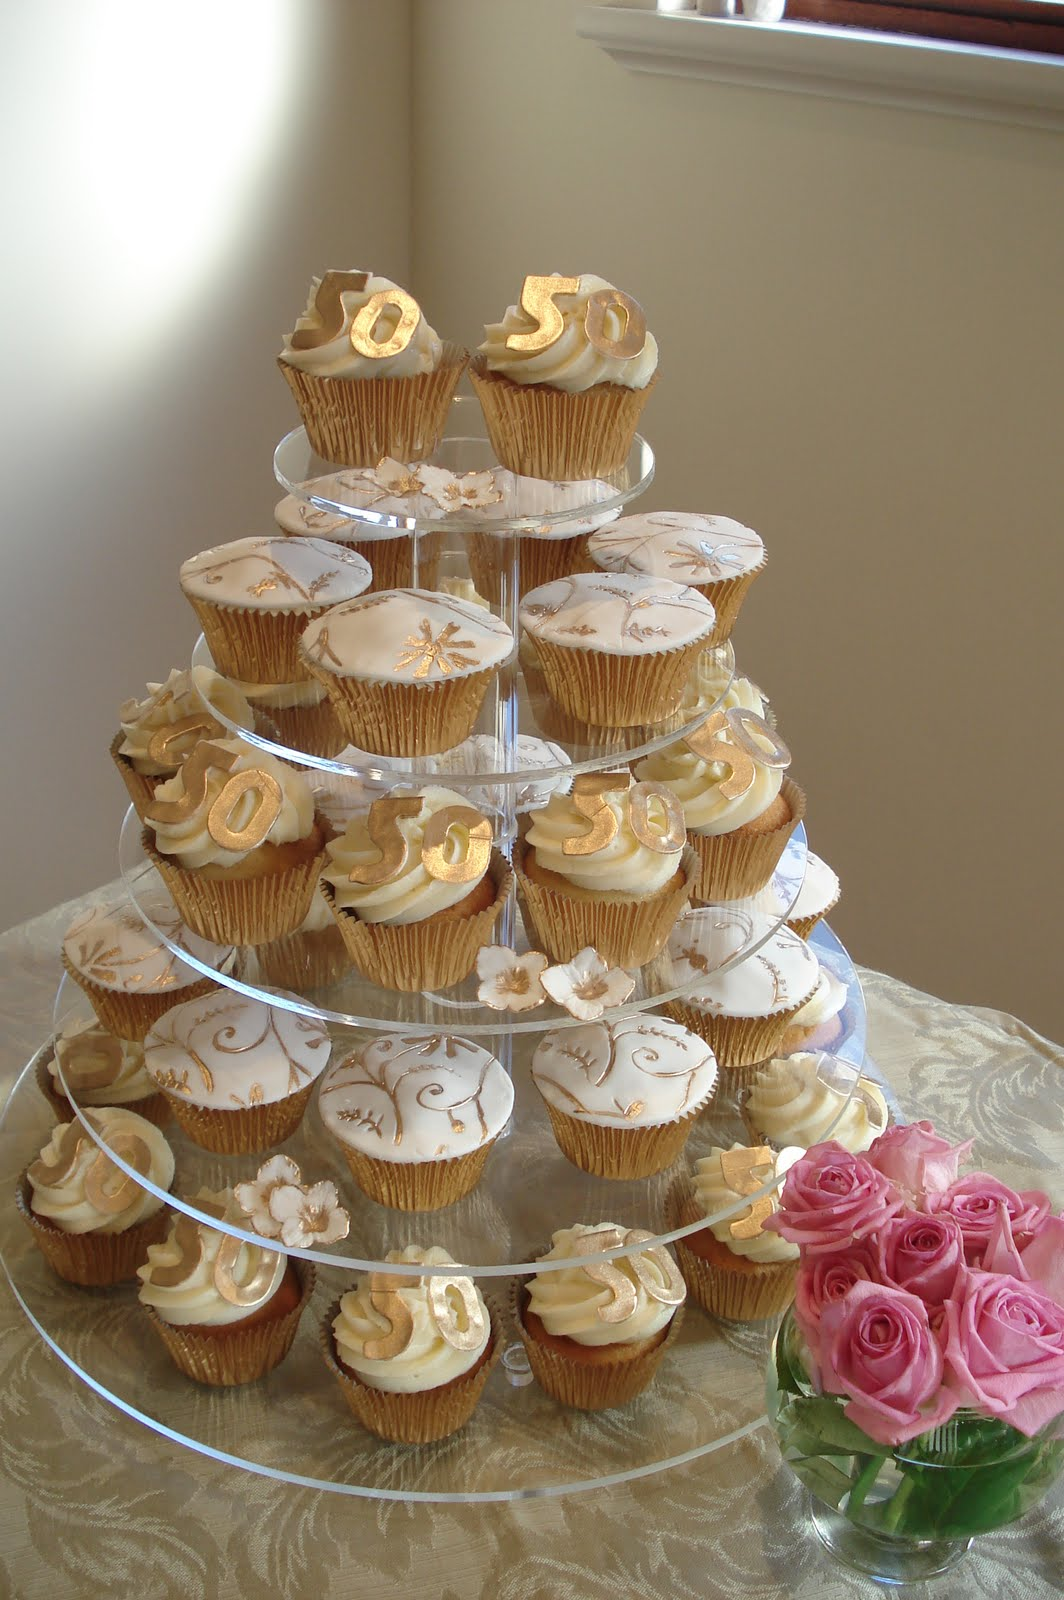 Cupcake Decorating Ideas For Anniversary : Wonderful World of Cupcakes: Cupcakes for a 50th Wedding ...